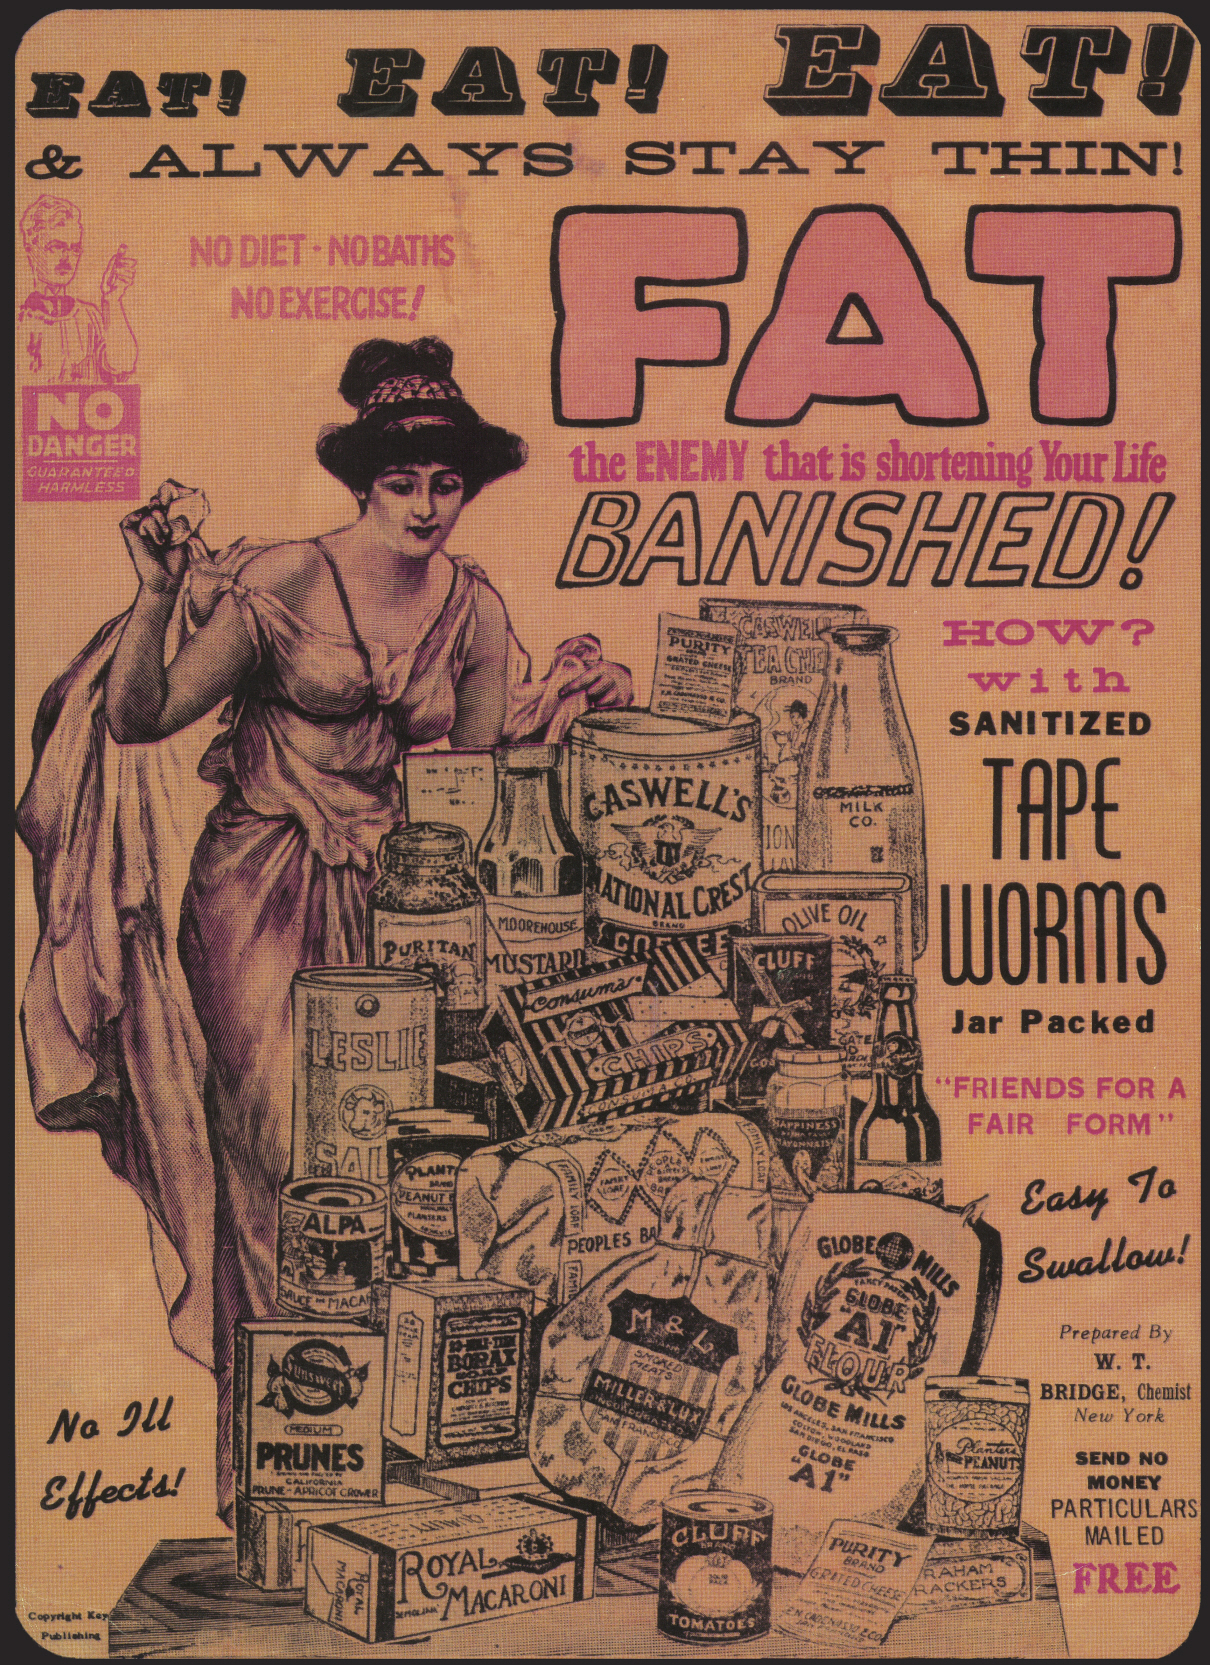 How can we reduce fat in the body